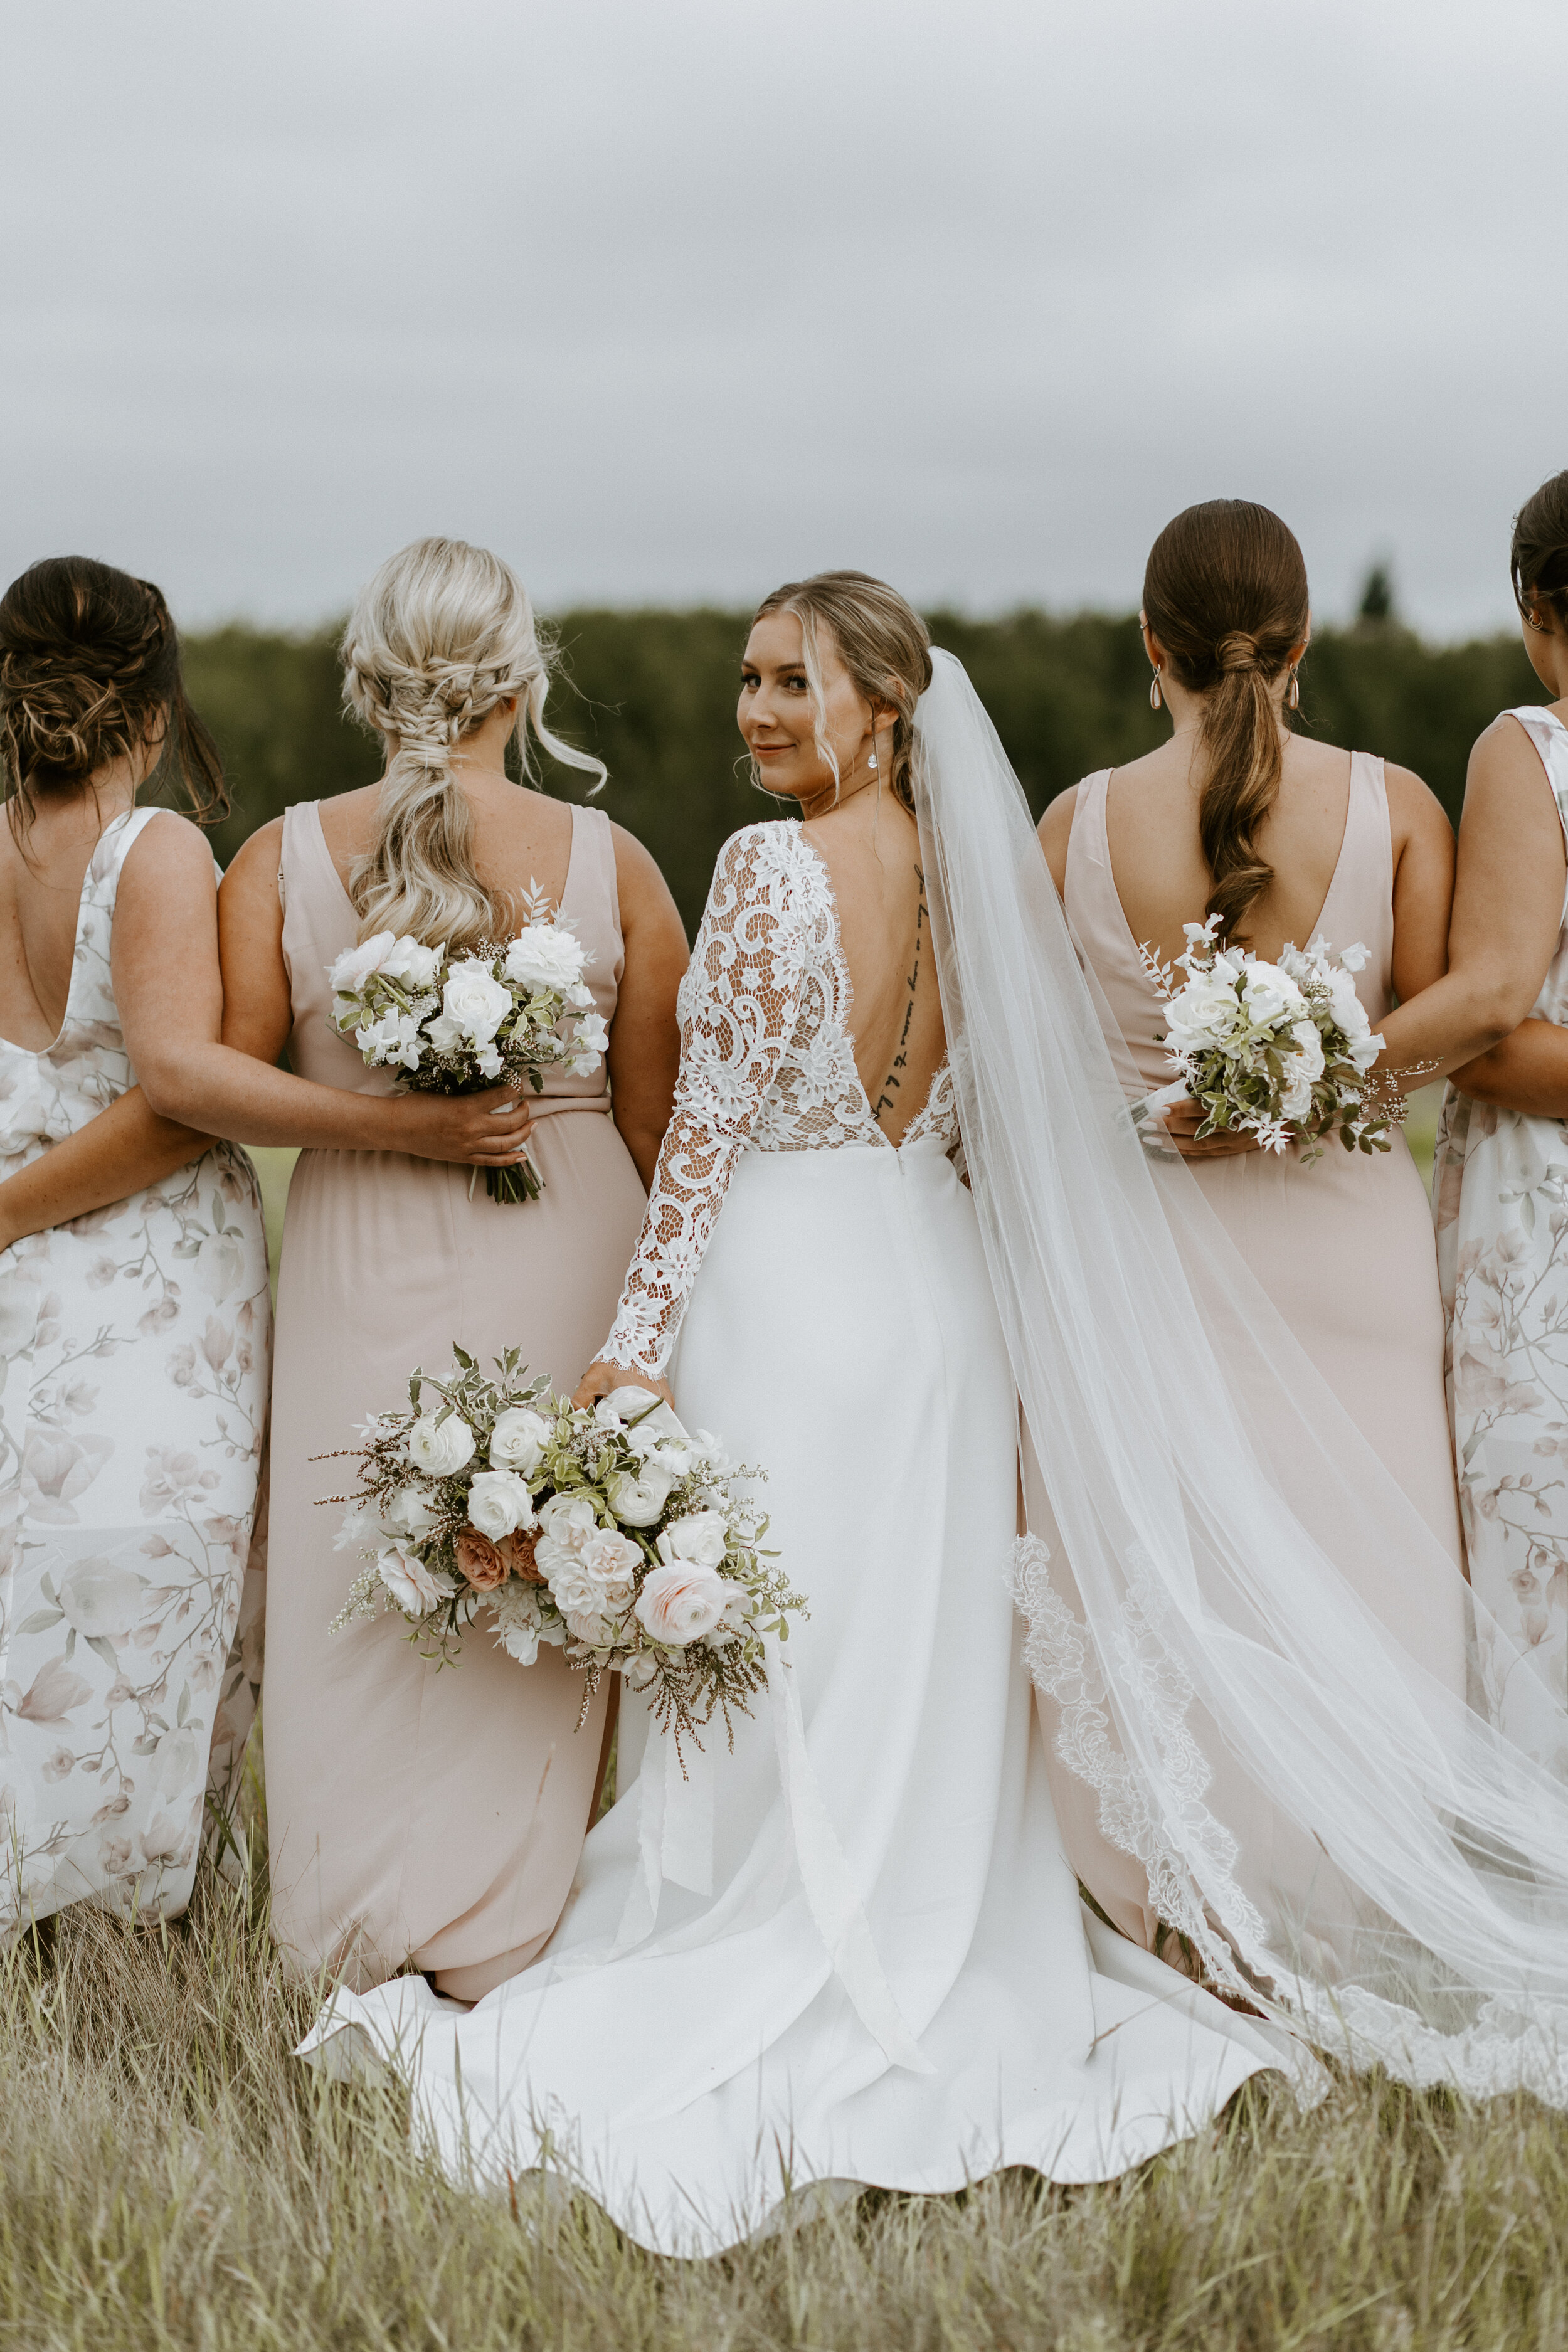 Bride and Bridesmaids - Bridal Party Wedding Style Inspiration